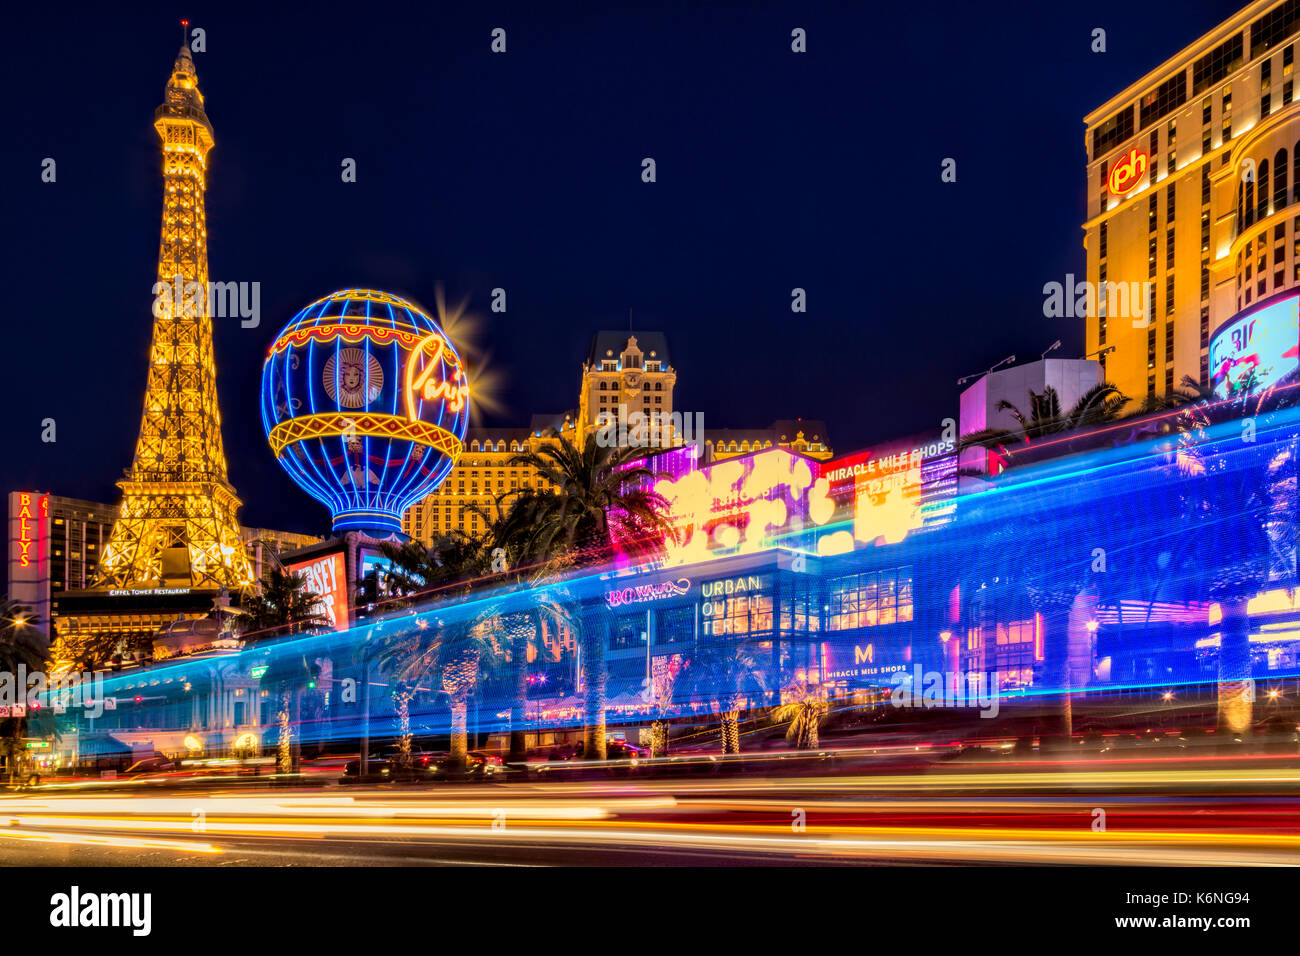 Good Las Vegas Strip Light Show   Light Streaks From Vehicular Traffic In The Las  Vegas Strip In Nevada Along With The Illuminated Paris Las Vegas Hotel A